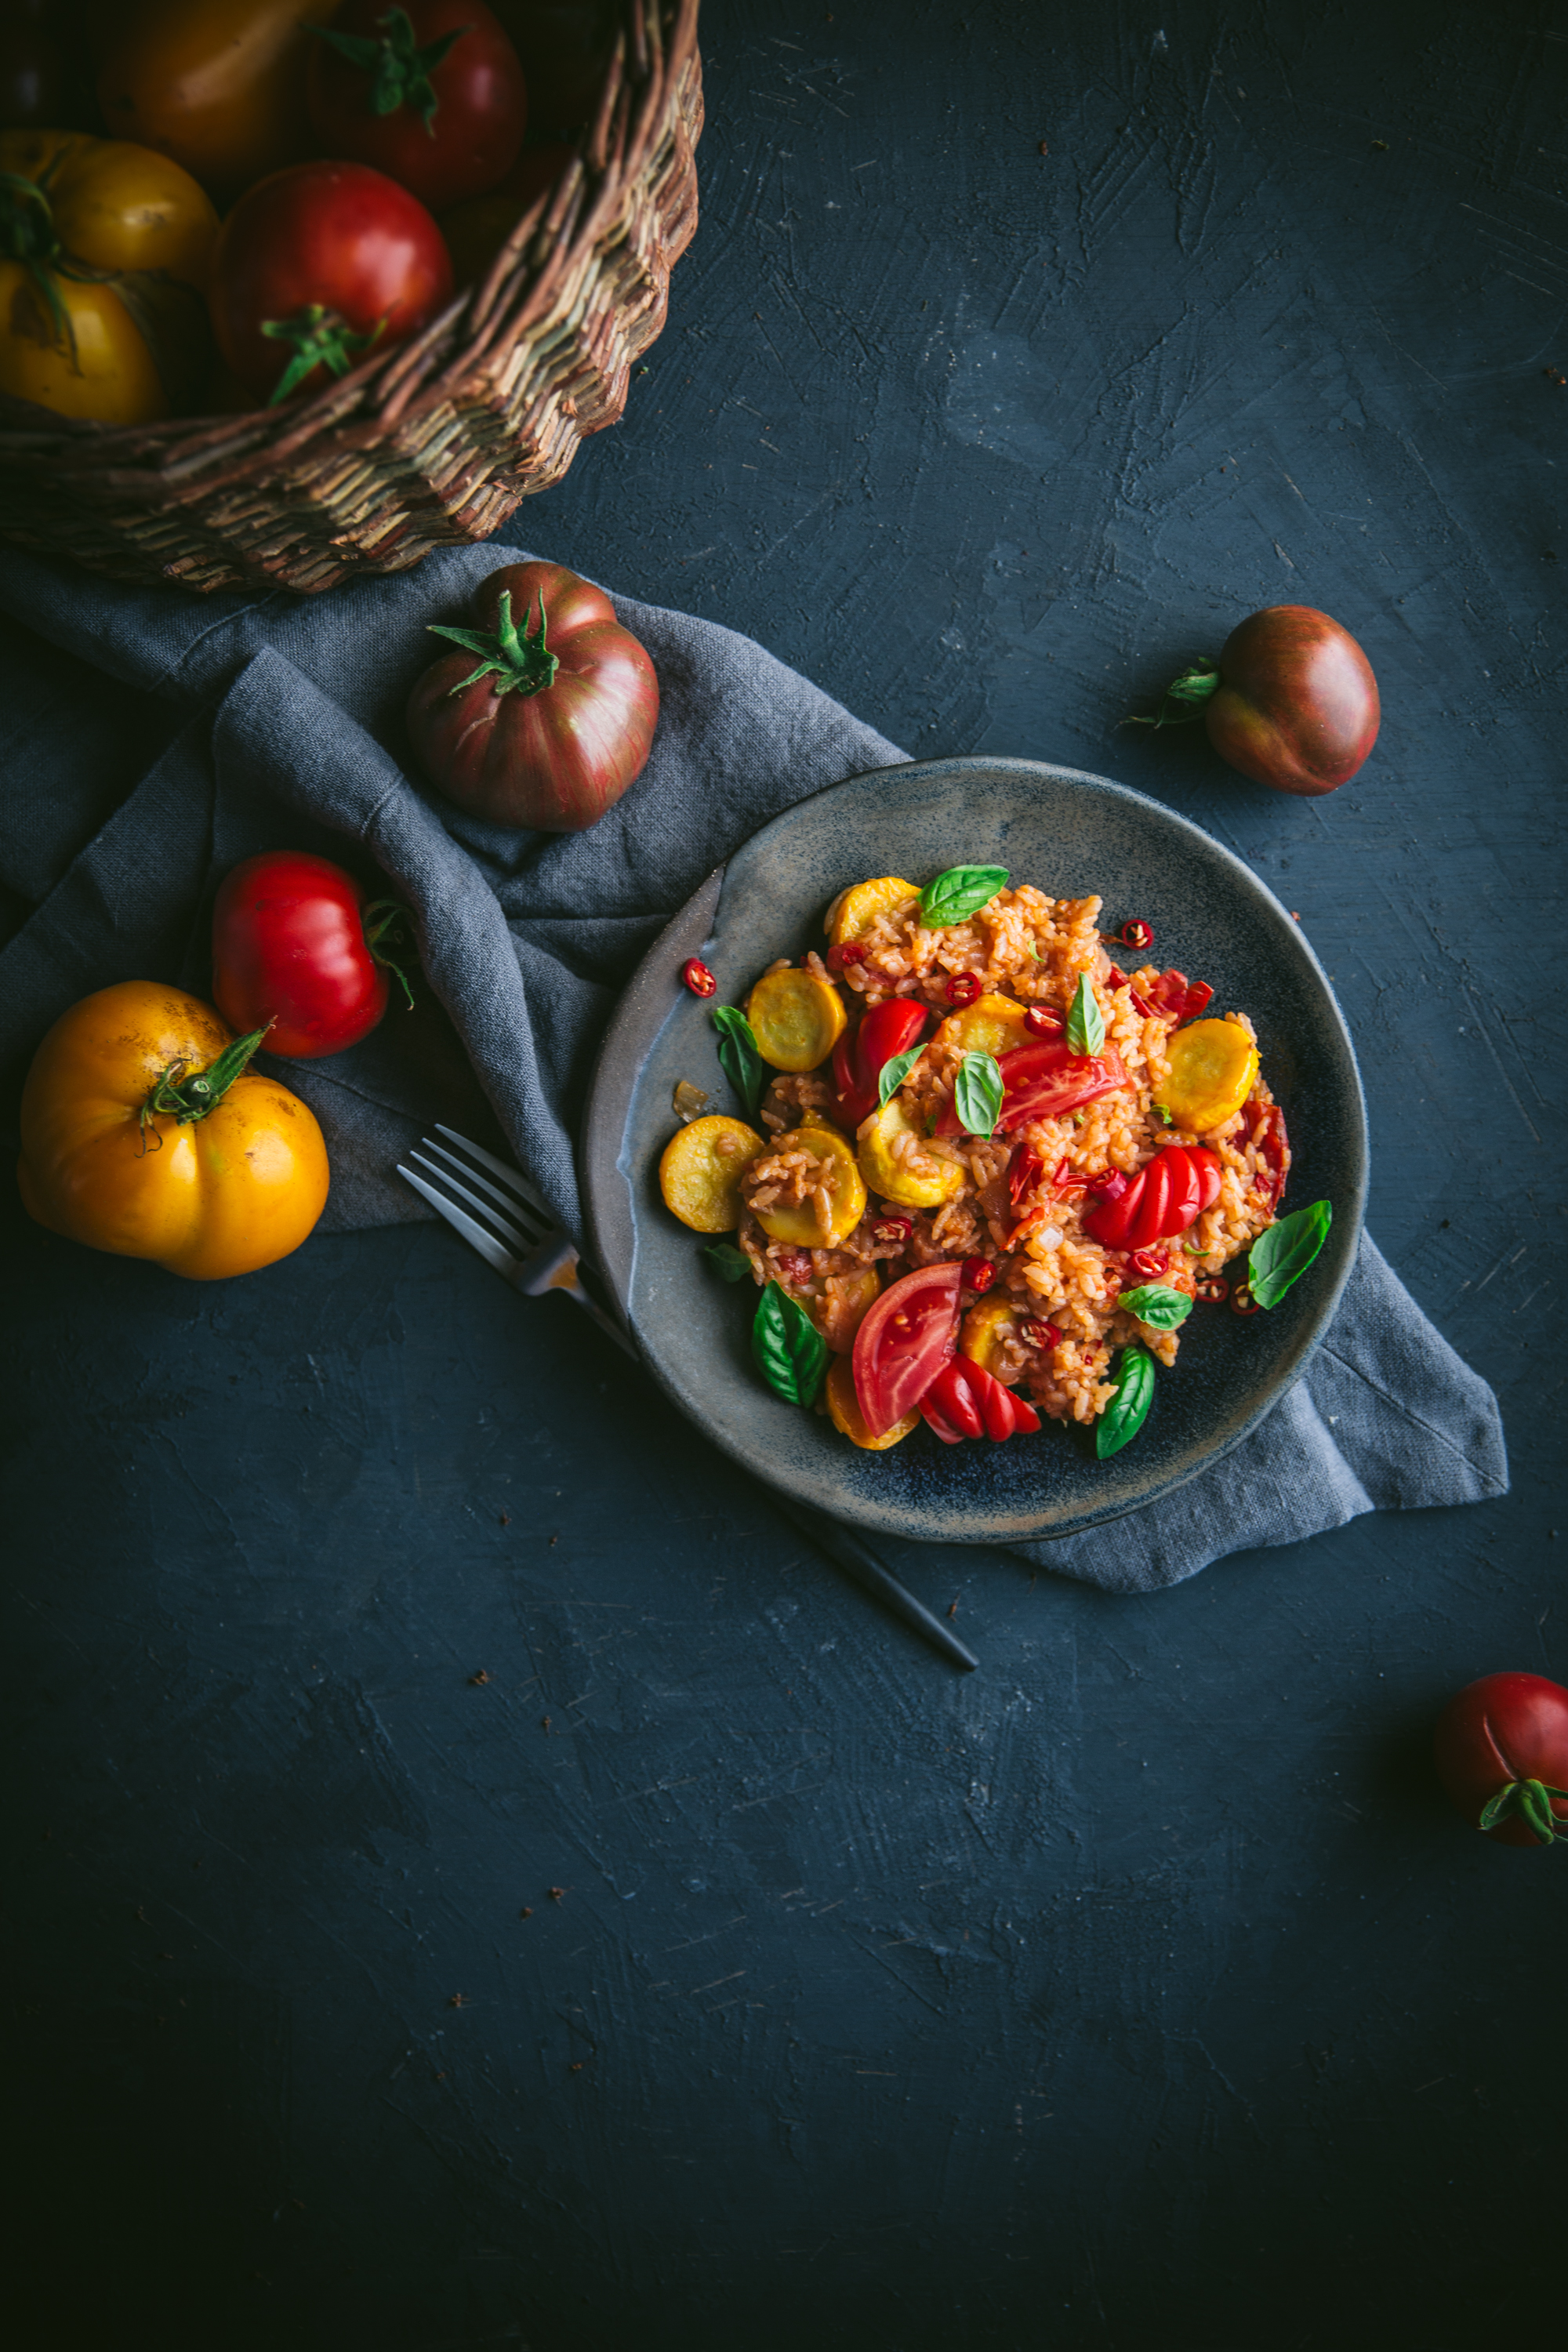 A delicious and easy summer squash and tomato stir fry with onions, garlic, rice, fresh basil, and chili. Recipe by Eva Kosmas Flores.